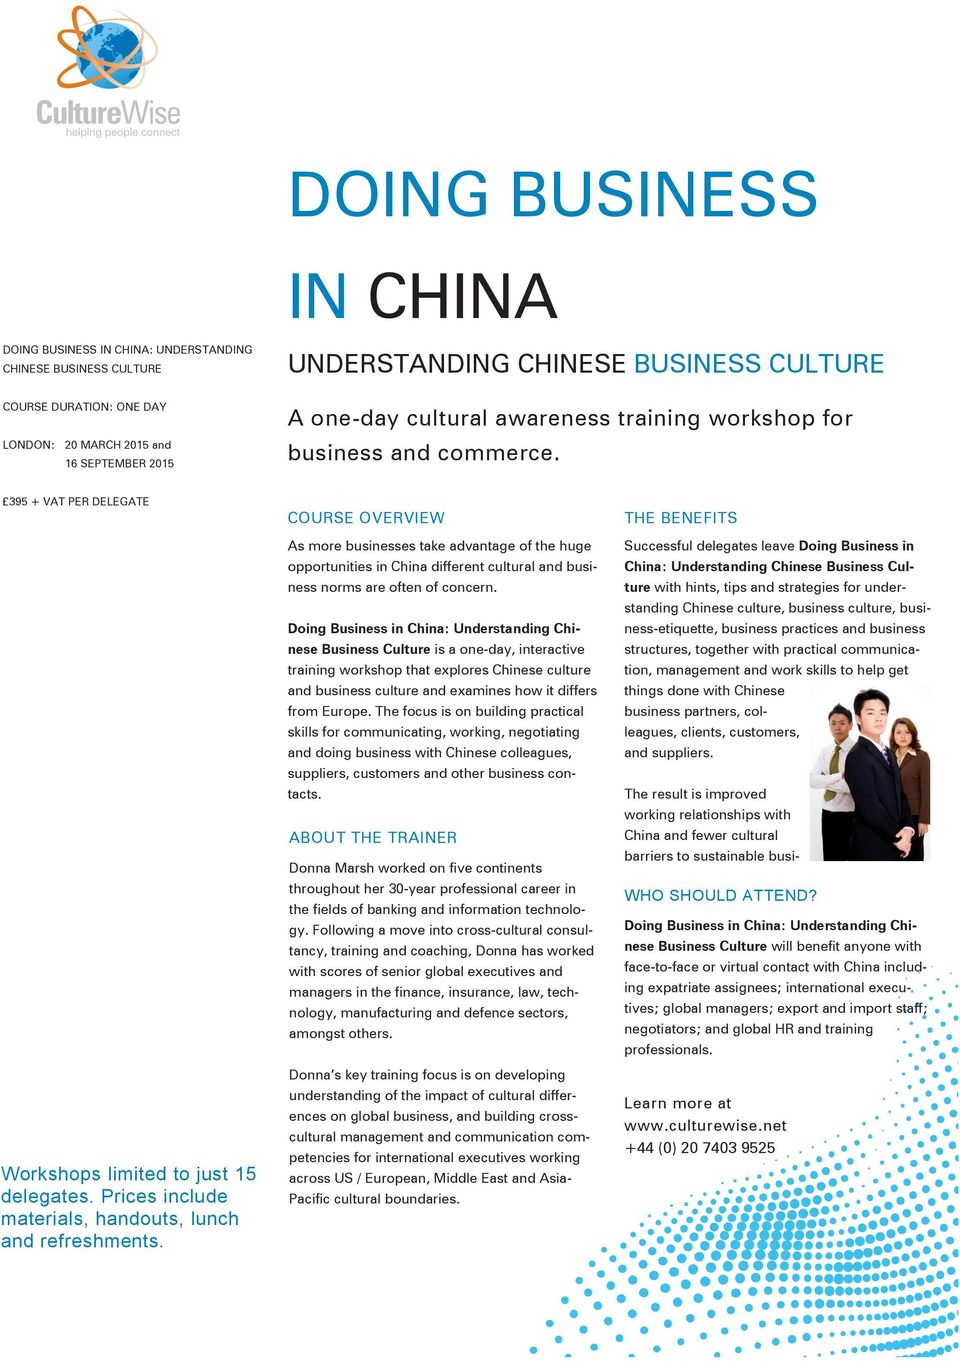 COURSE OVERVIEW As more businesses take advantage of the huge opportunities in China different cultural and business norms are often of concern.